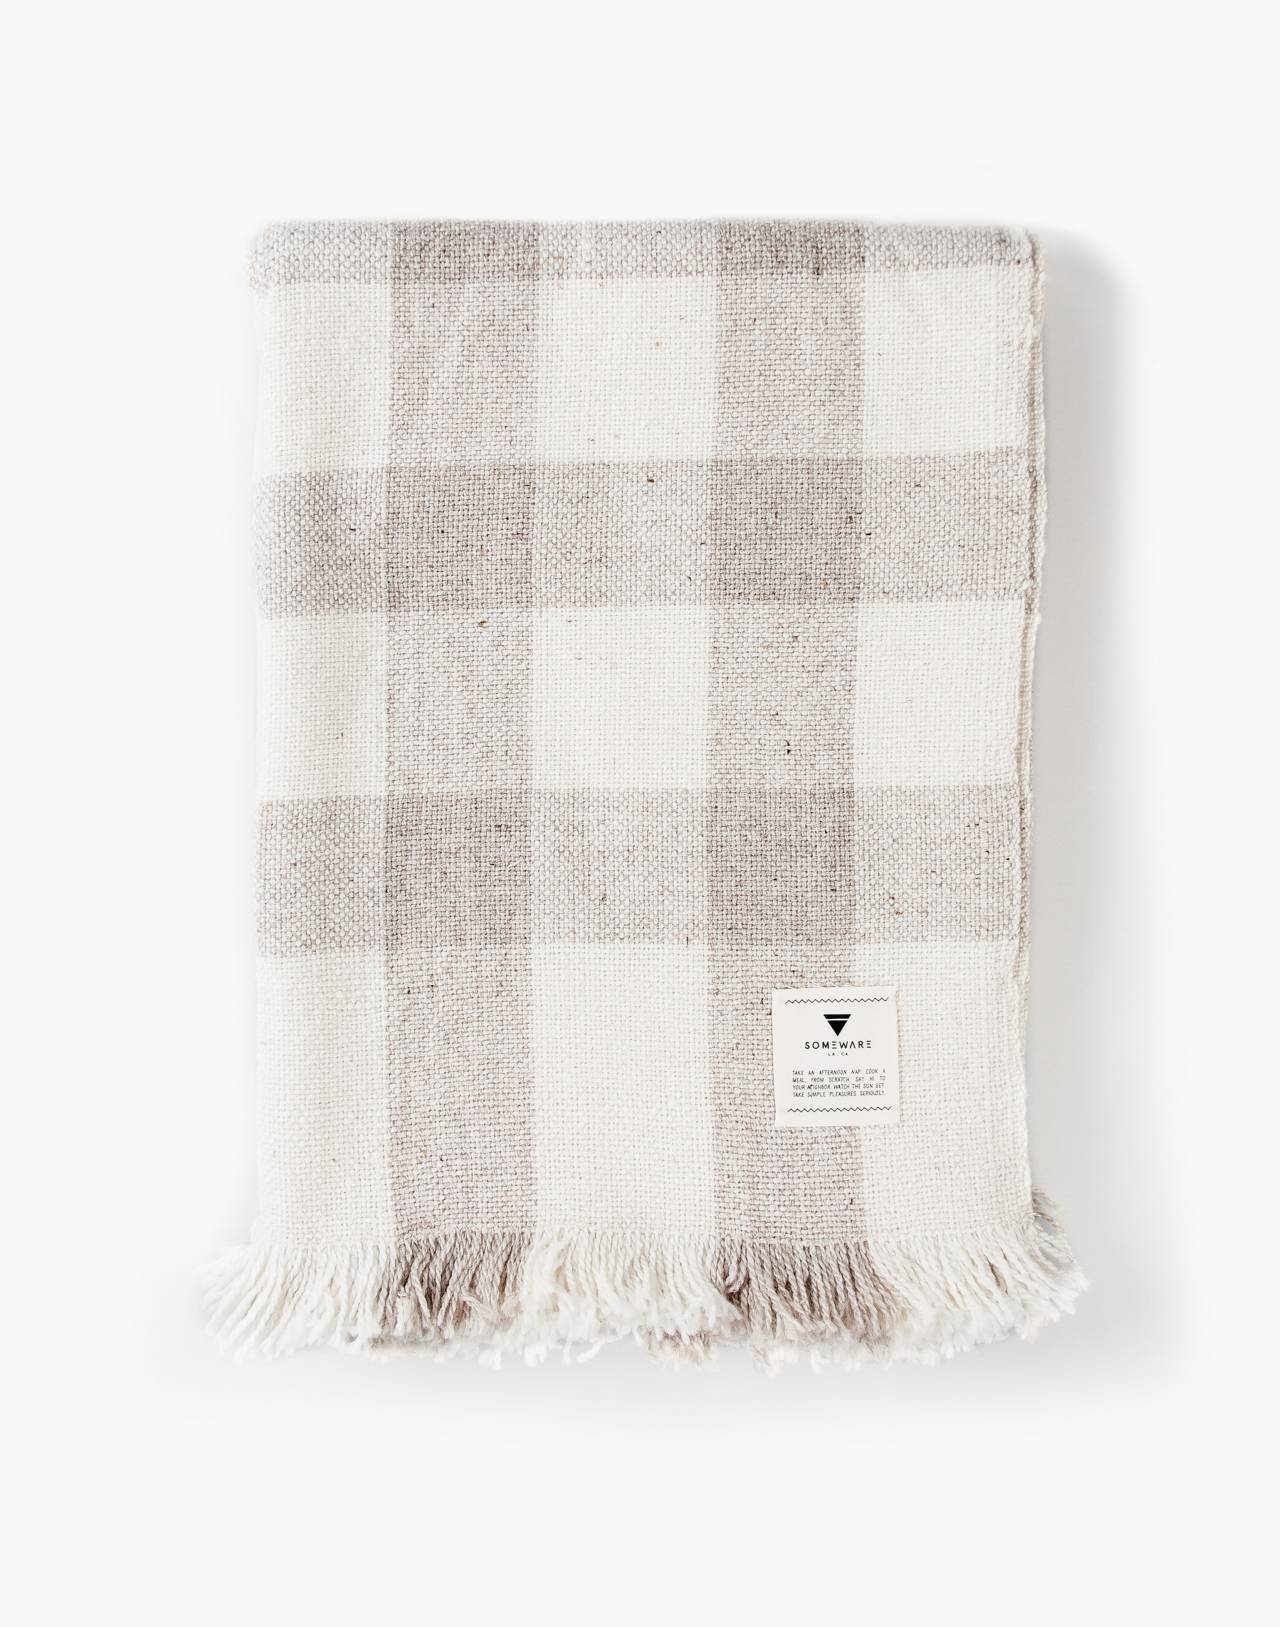 SOMEWARE™ Monterey Throw in grey image 3